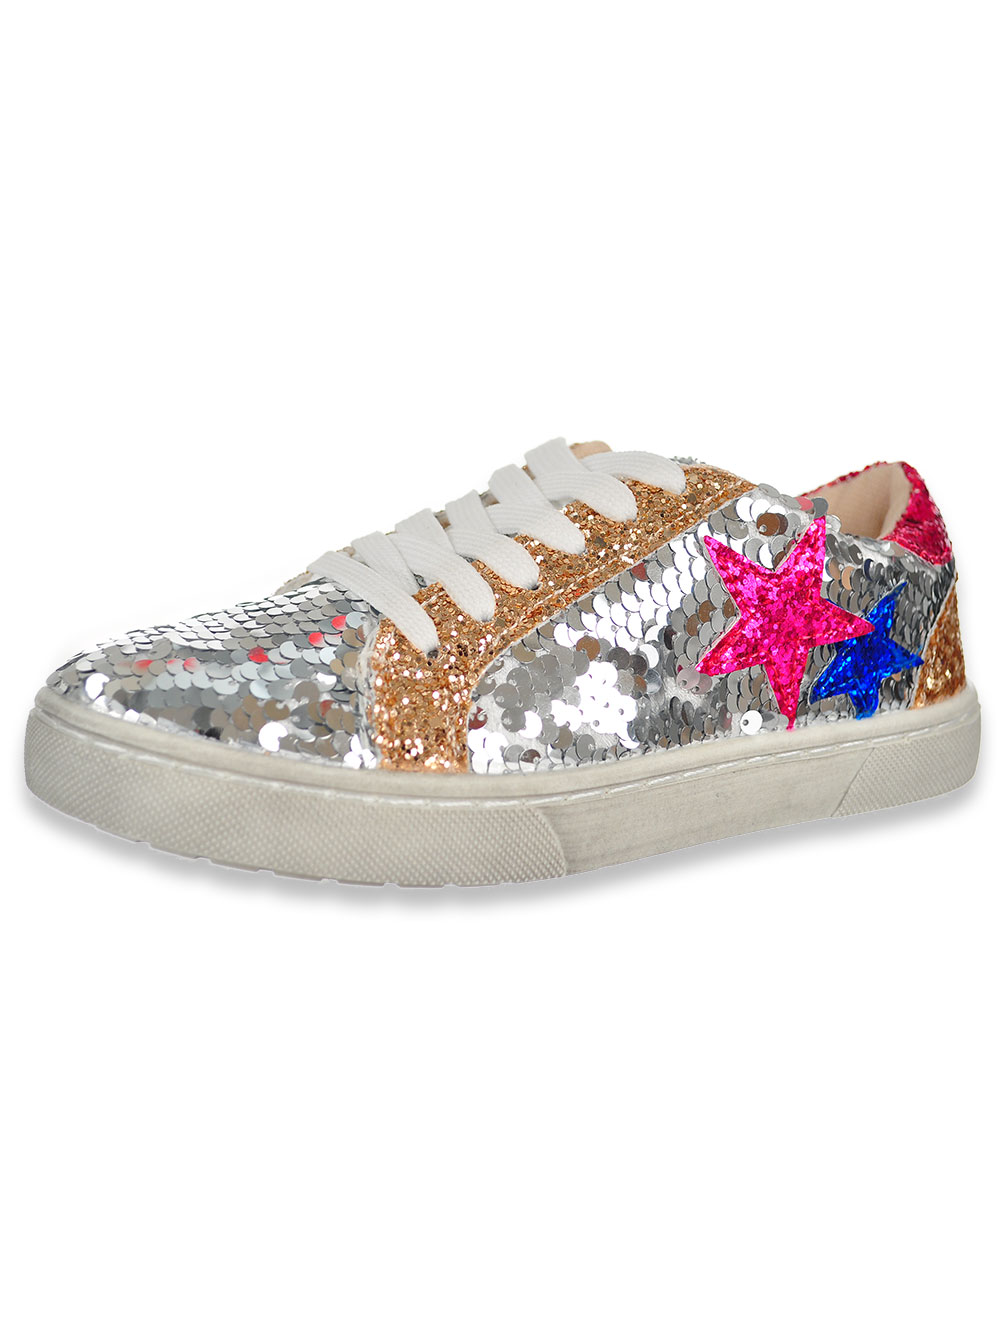 Girls Multi Sneakers